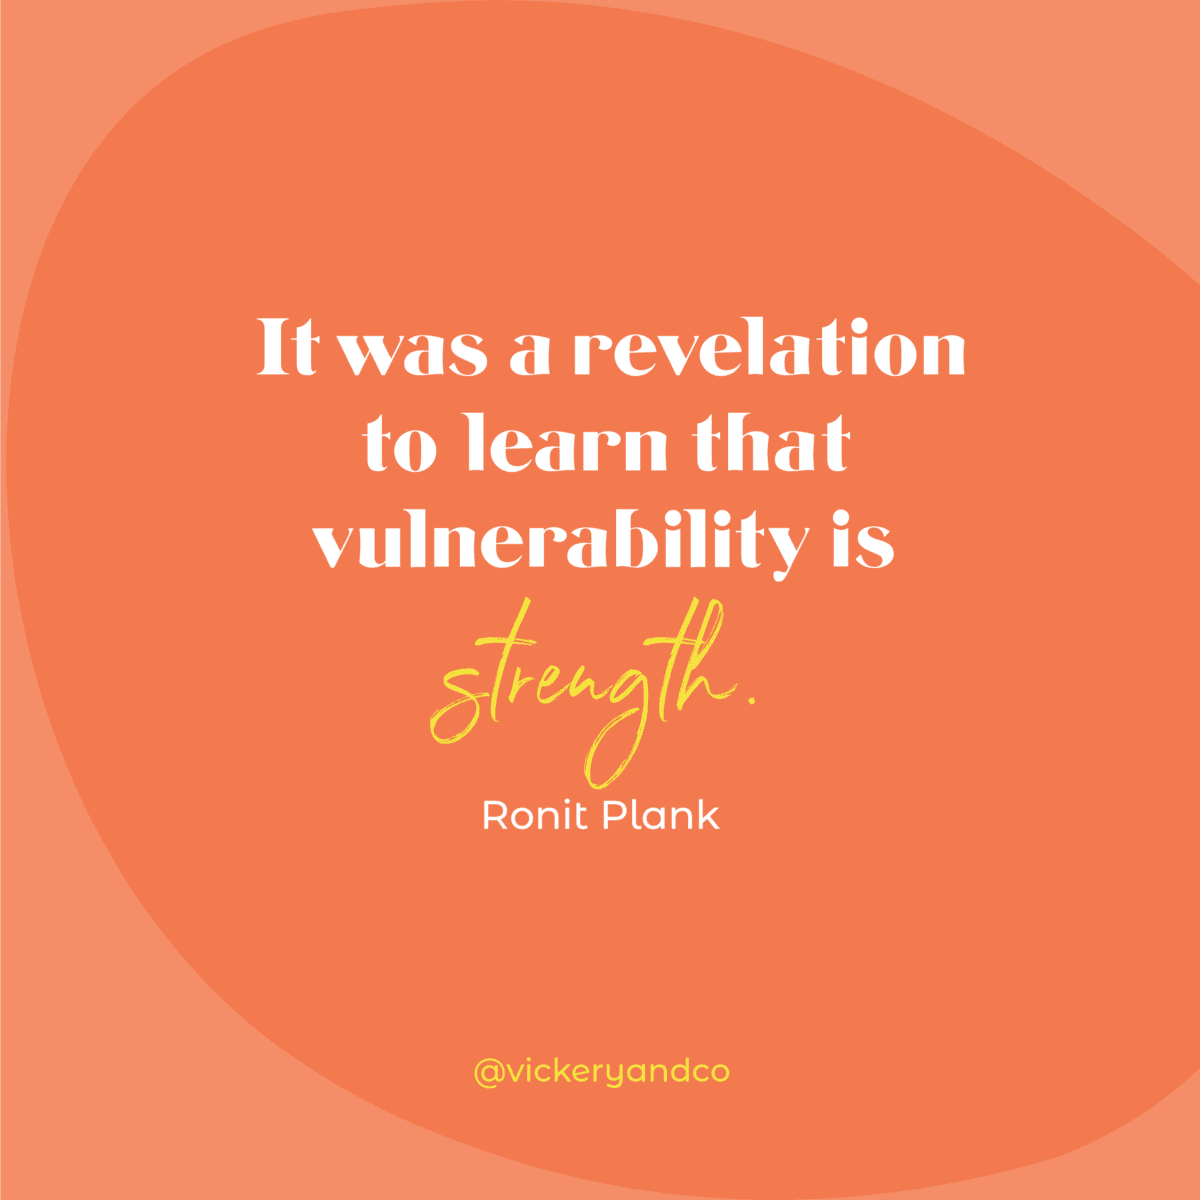 It was a revelation to learn that vulnerability is a strength. Ronit Plank, Episode 170, A Journey of Resilience and Reconciliation